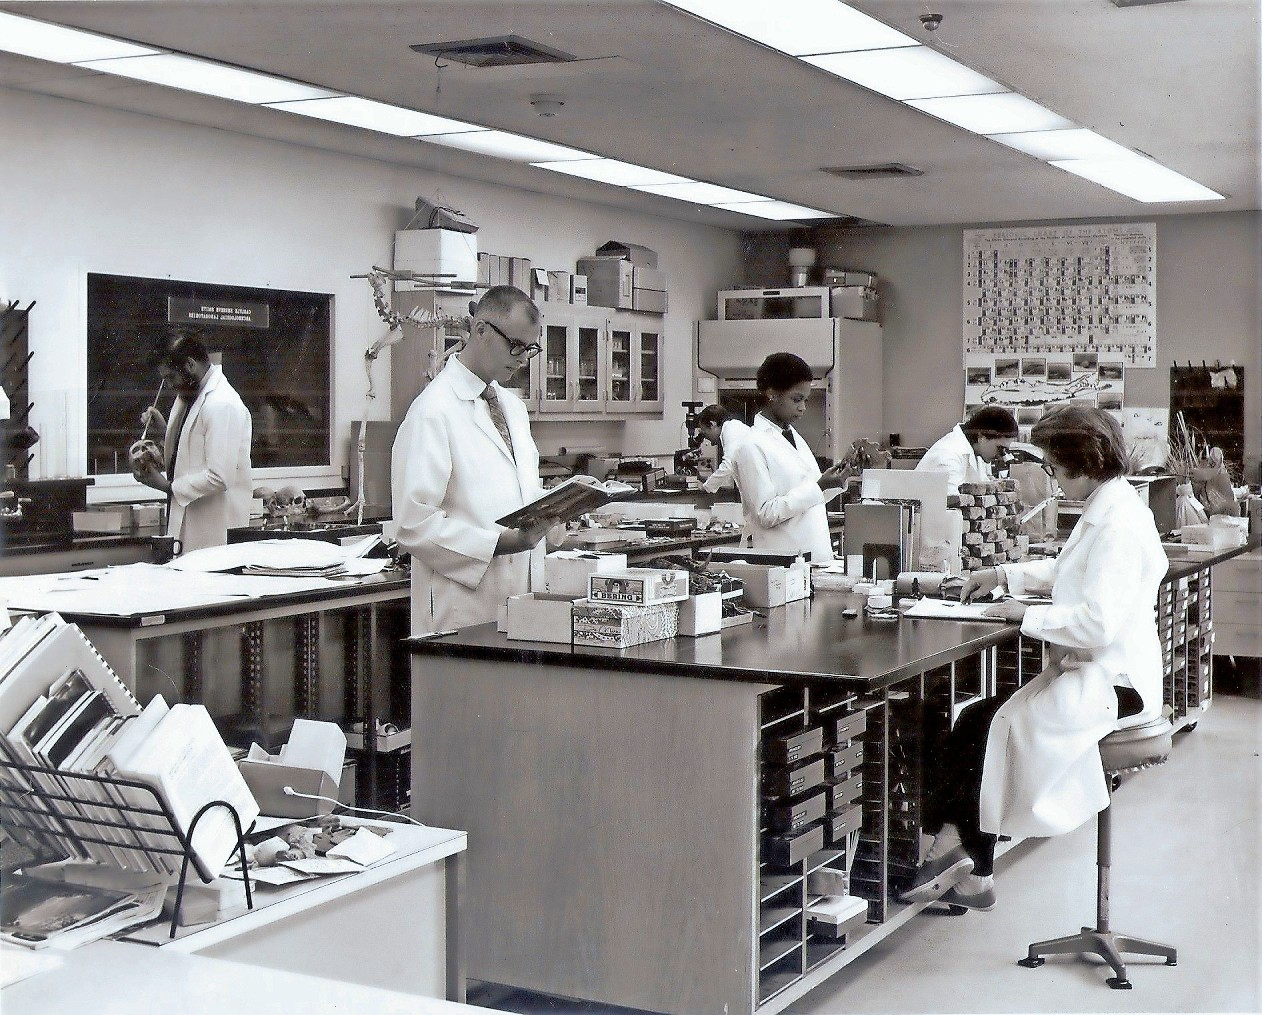 Researchers in a laboratory at Garvies Point Museum and Preserve in 1970.